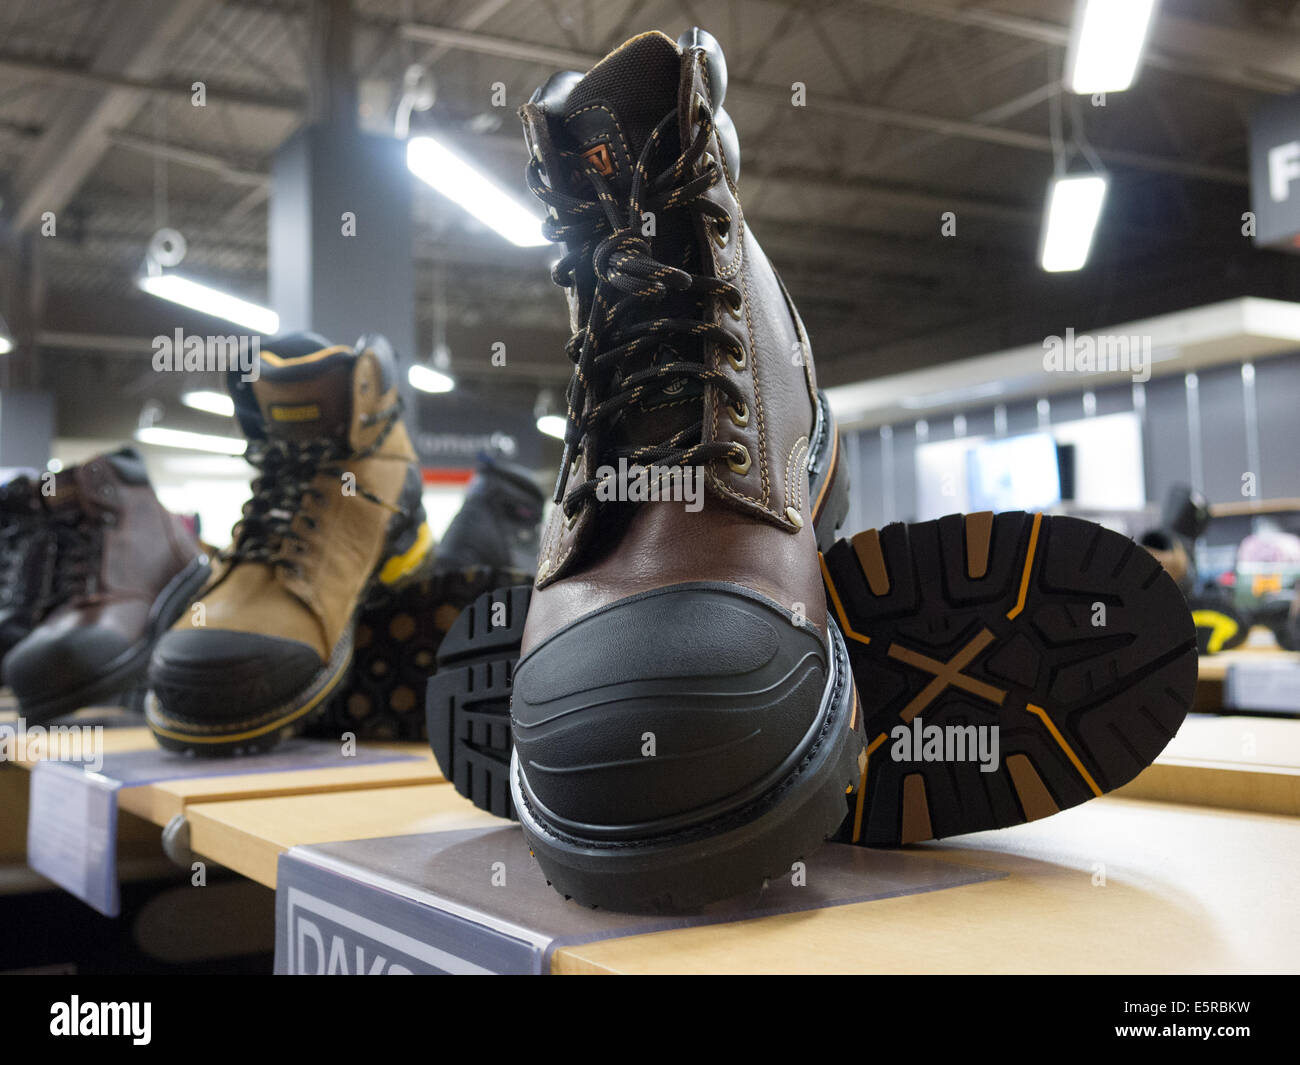 Men Leather Work Boots Store Display Stock Photo, Royalty Free ...